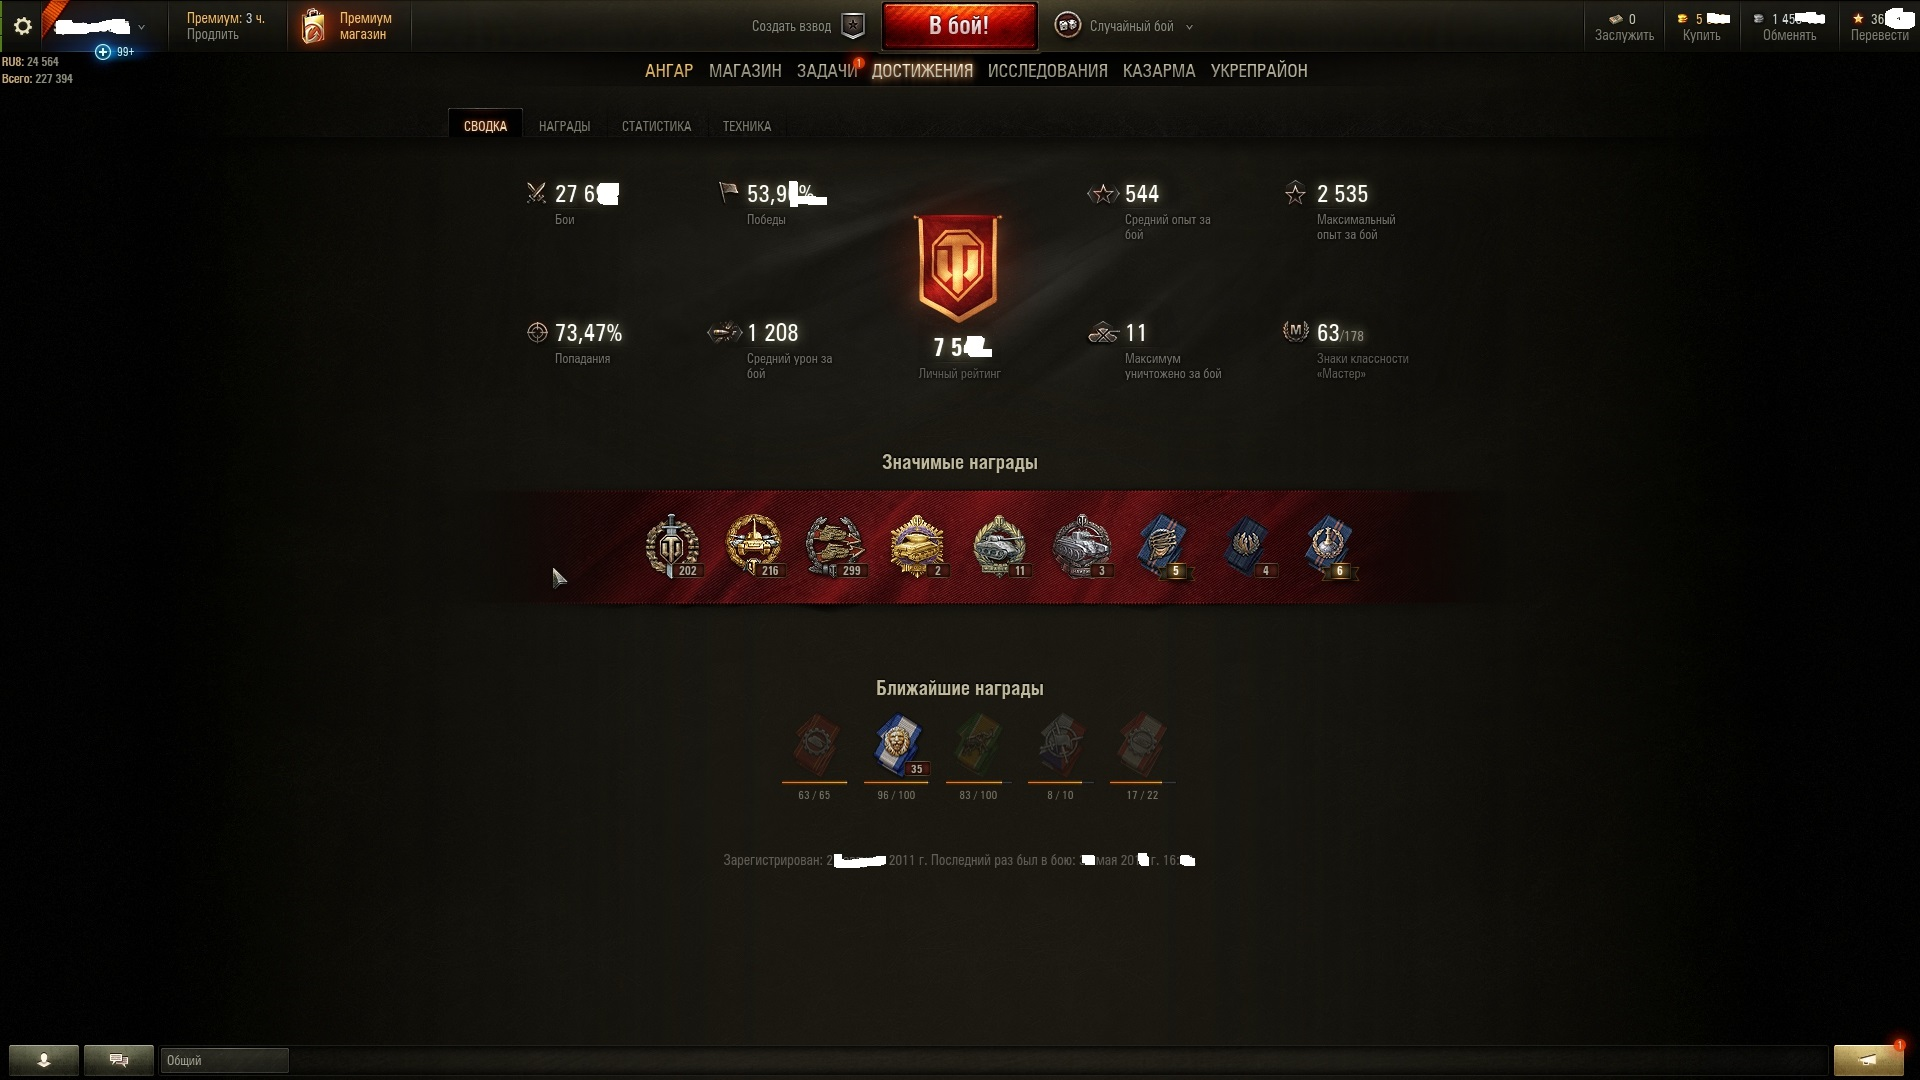 World of Tanks Account 27600 fights 14 top tanks 12 pre